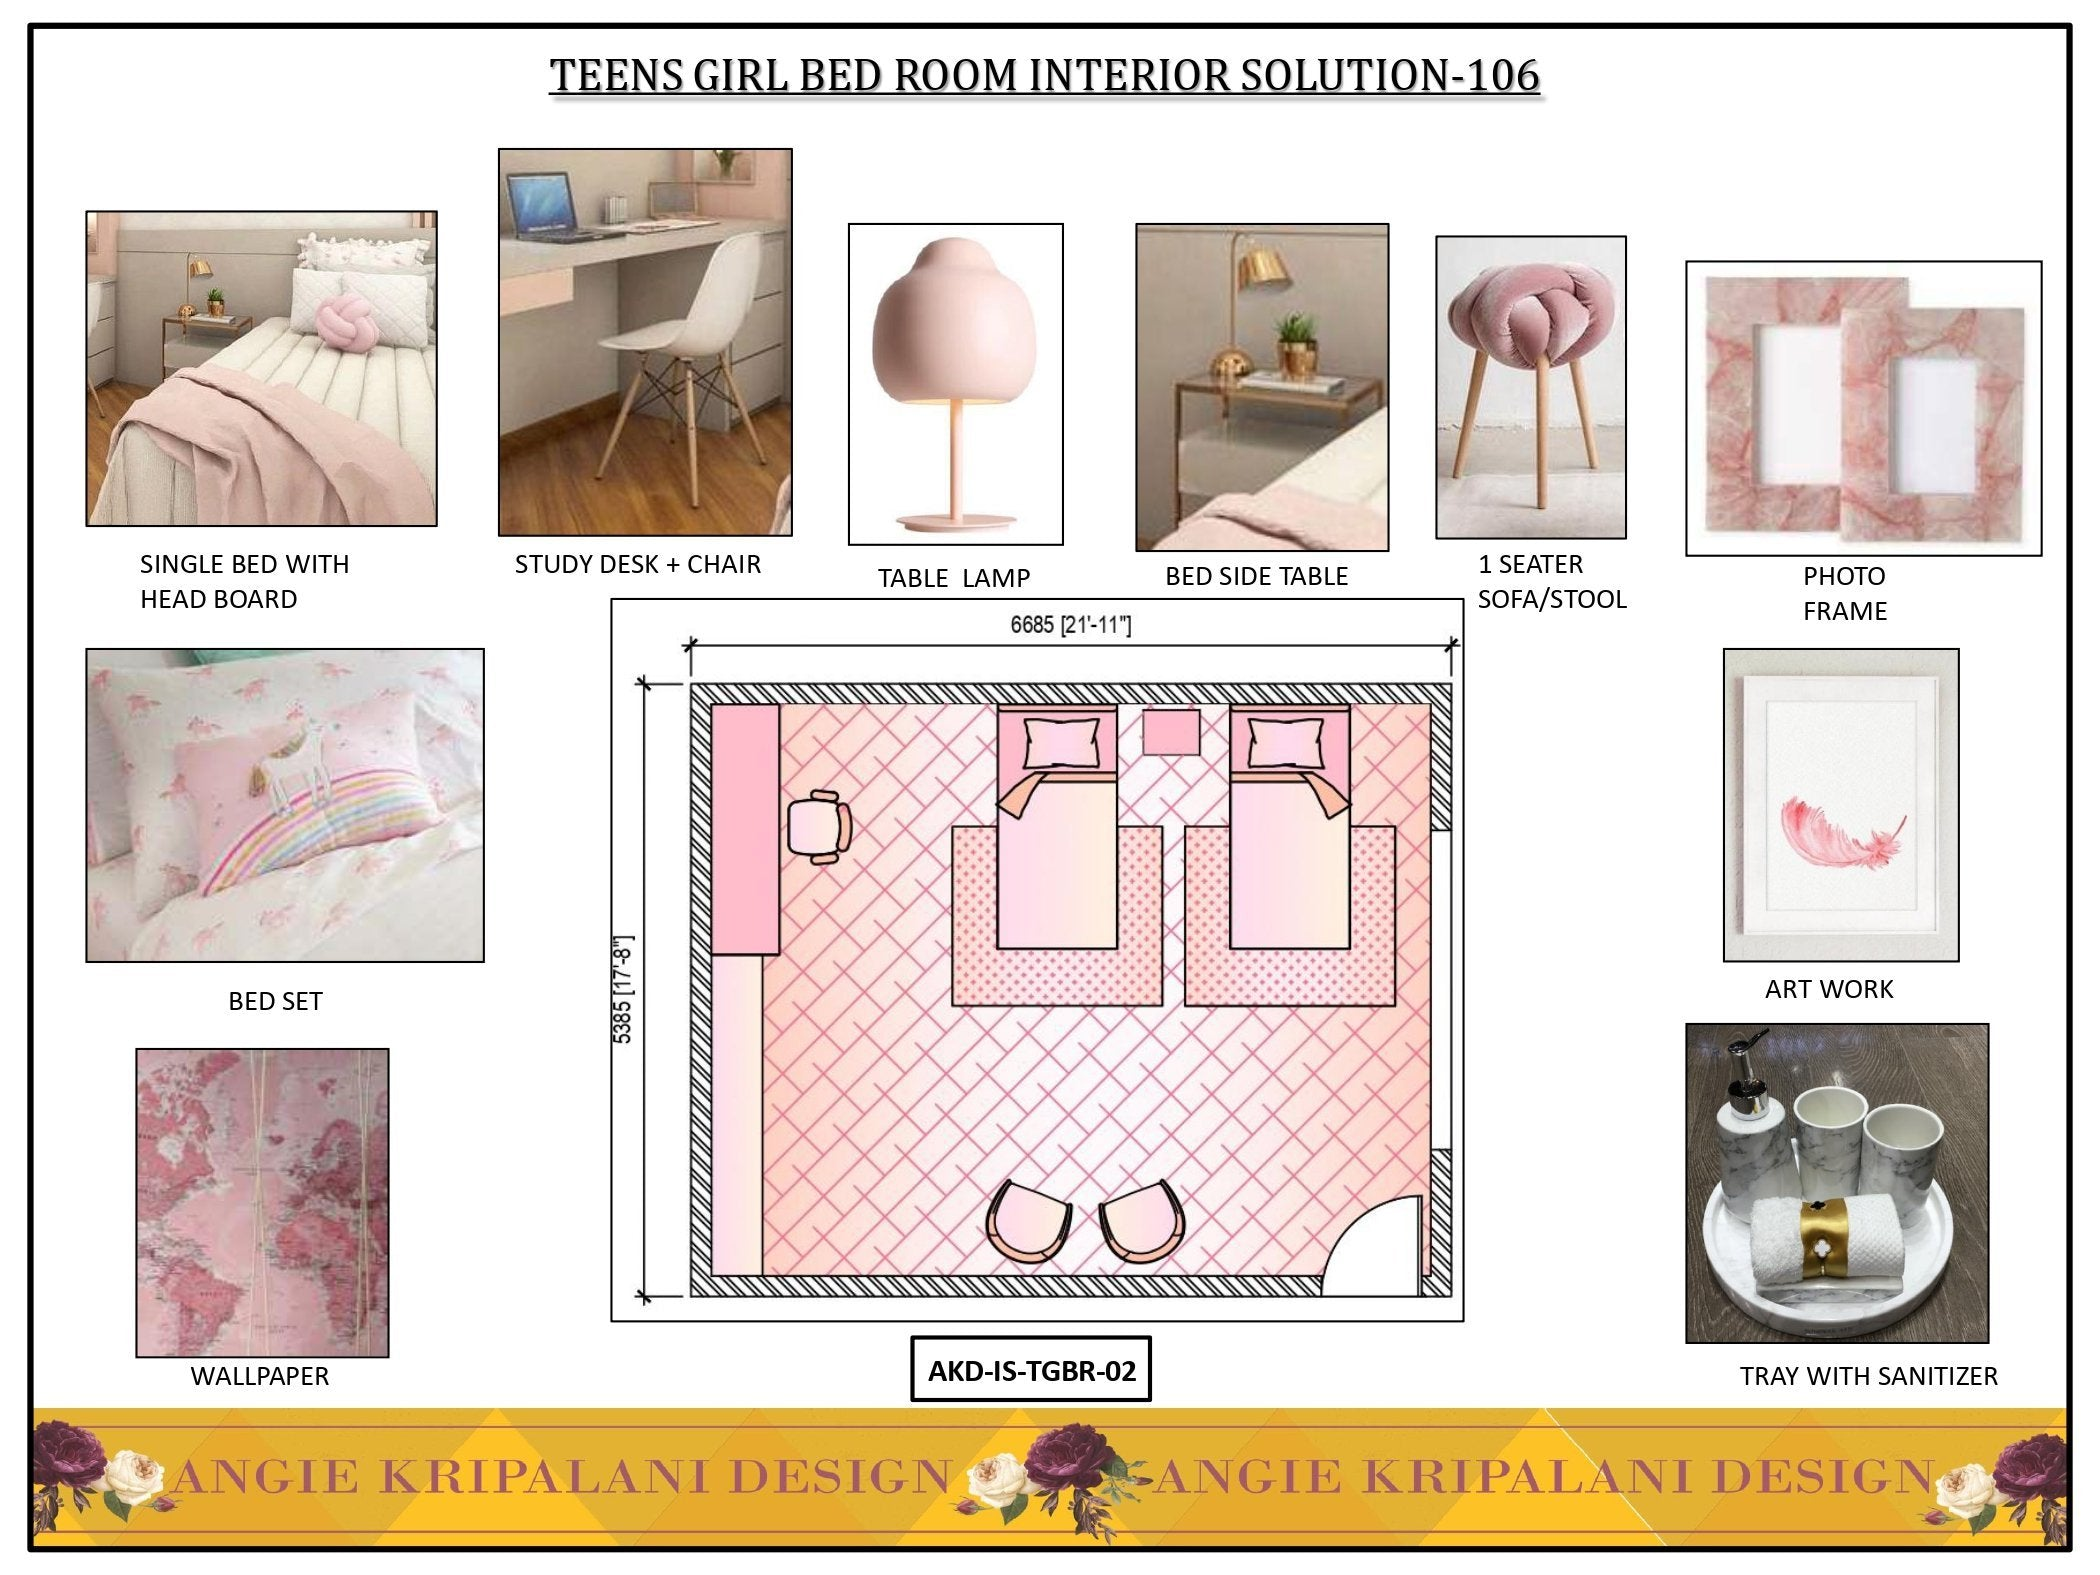 Teen Girl Bed Room Interior Solution - 106 ANGIE HOMES